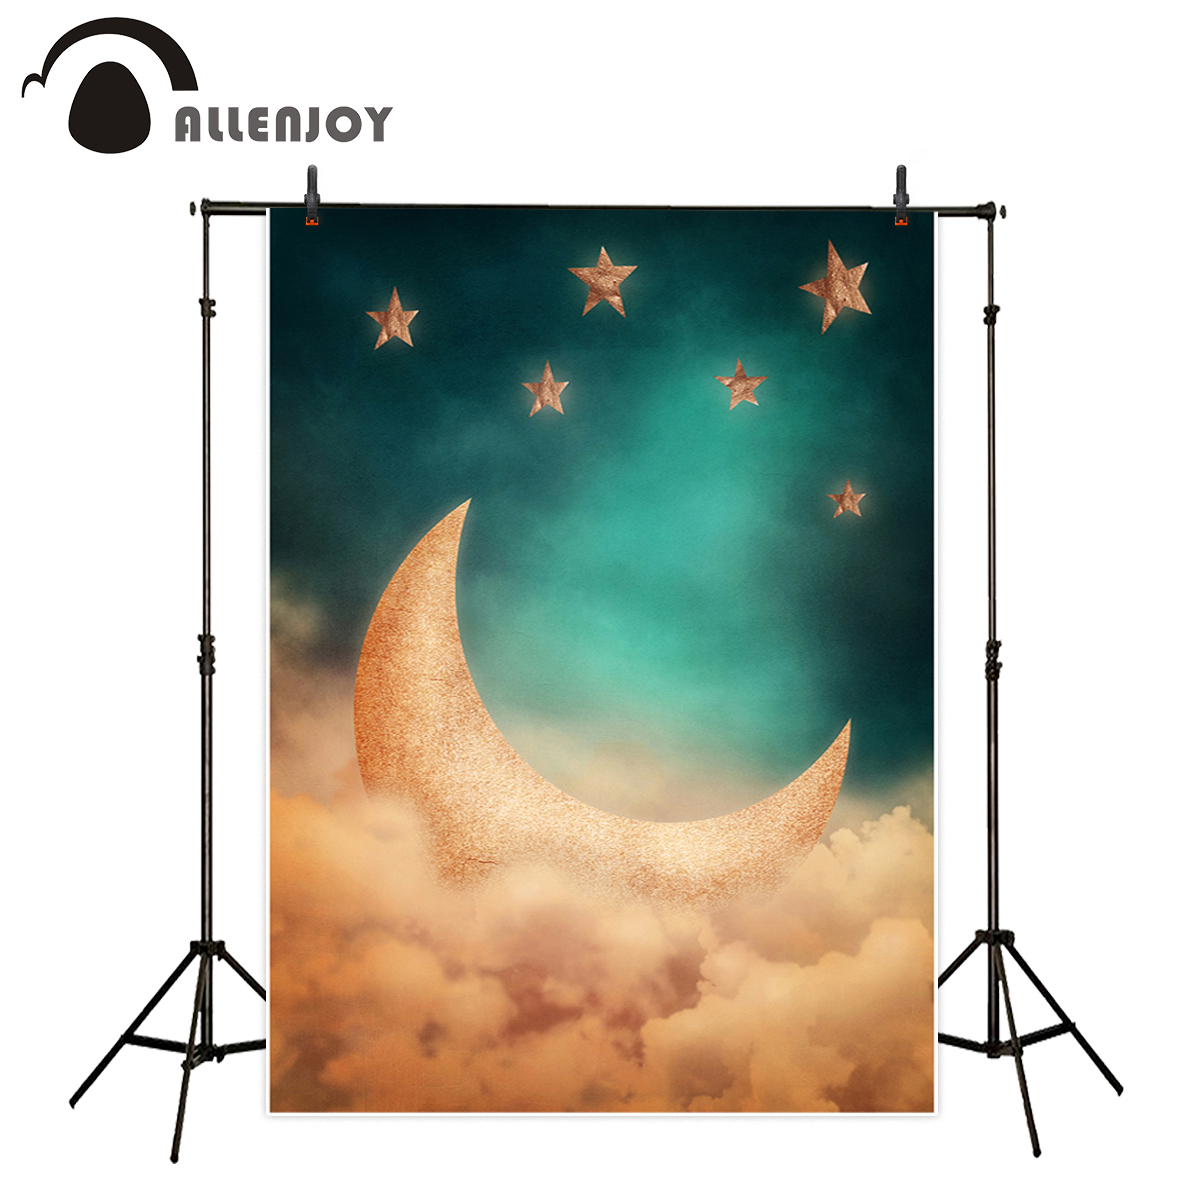 Allenjoy camera fotografica background Classic vintage stars cloud moon dream vinyl fabric fotografia photocall for photo studio allenjoy photography background lovely clouds cotton hearts stars rainbow backdrop photo studio camera fotografica